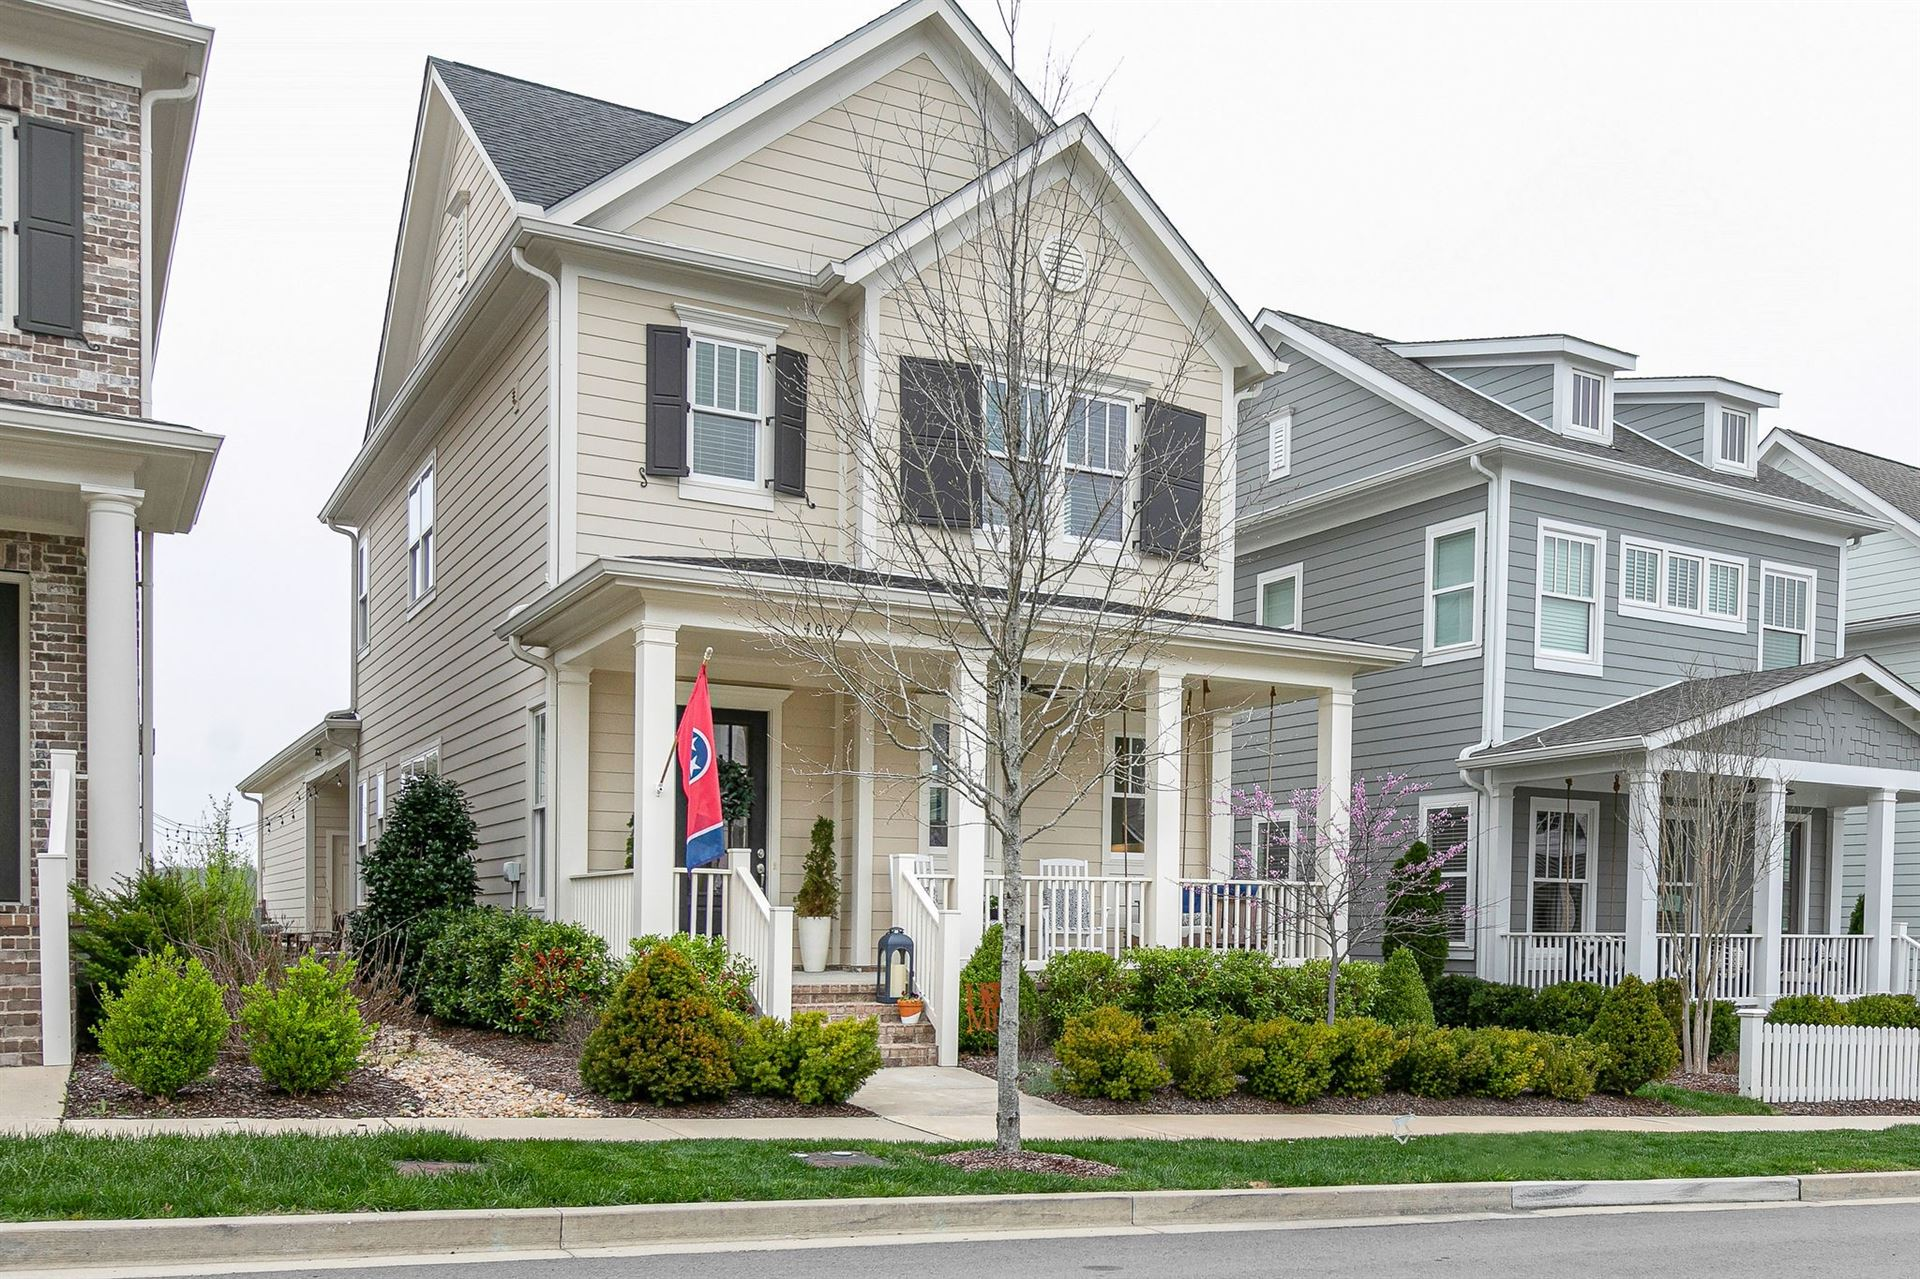 Photo of 4074 Camberley St, Franklin, TN 37064 (MLS # 2137137)